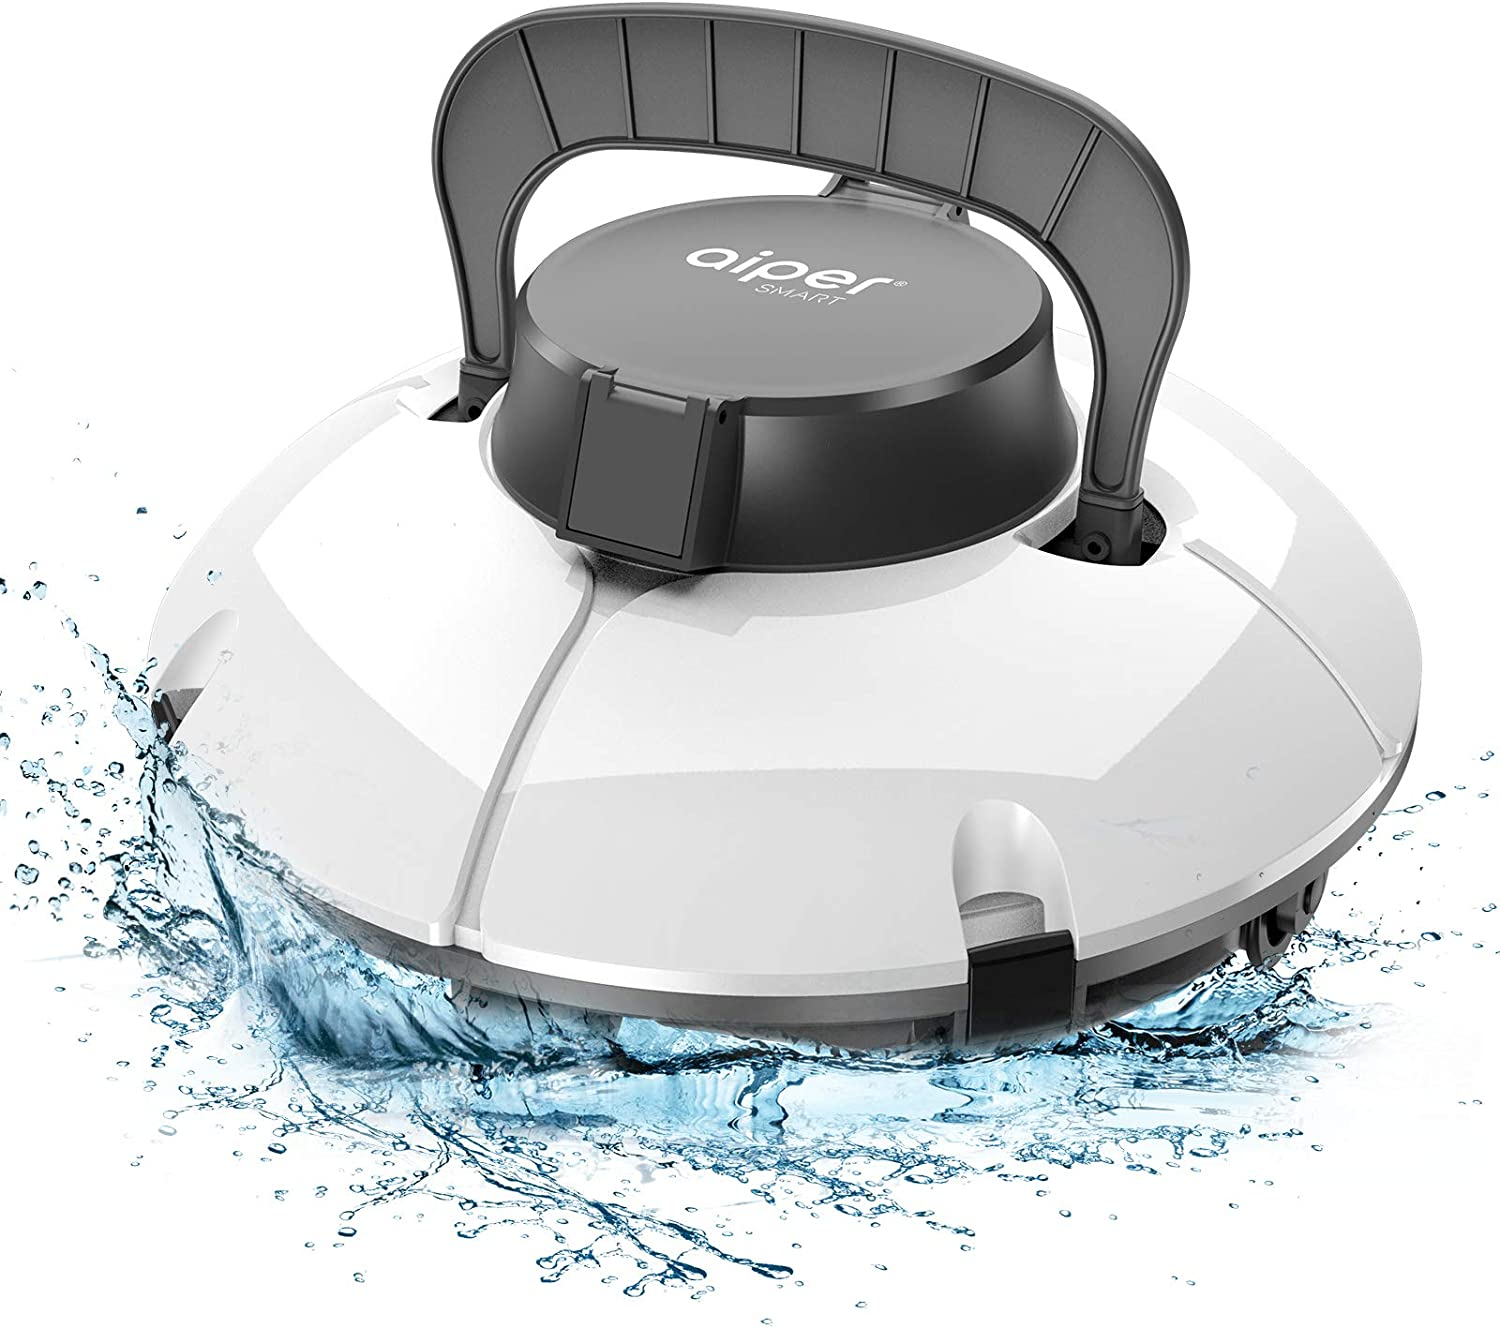 AIPER Cordless Automatic Pool Cleaner